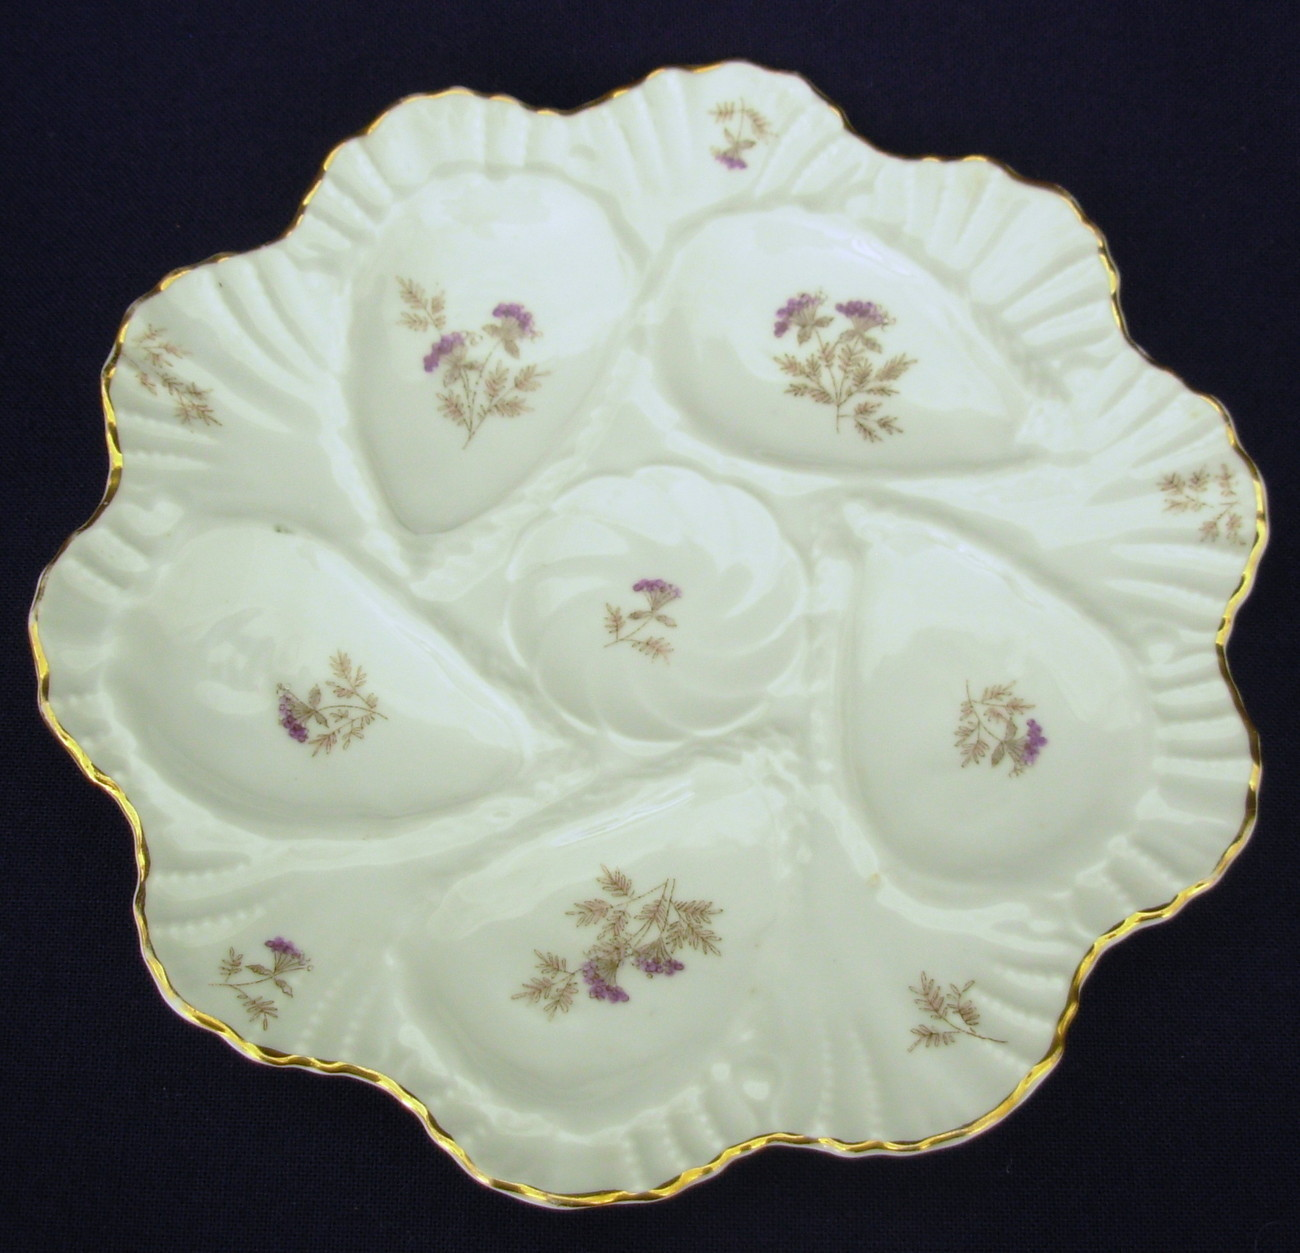 antique 5 well porcelain Oyster Plate White Lavender Floral #2